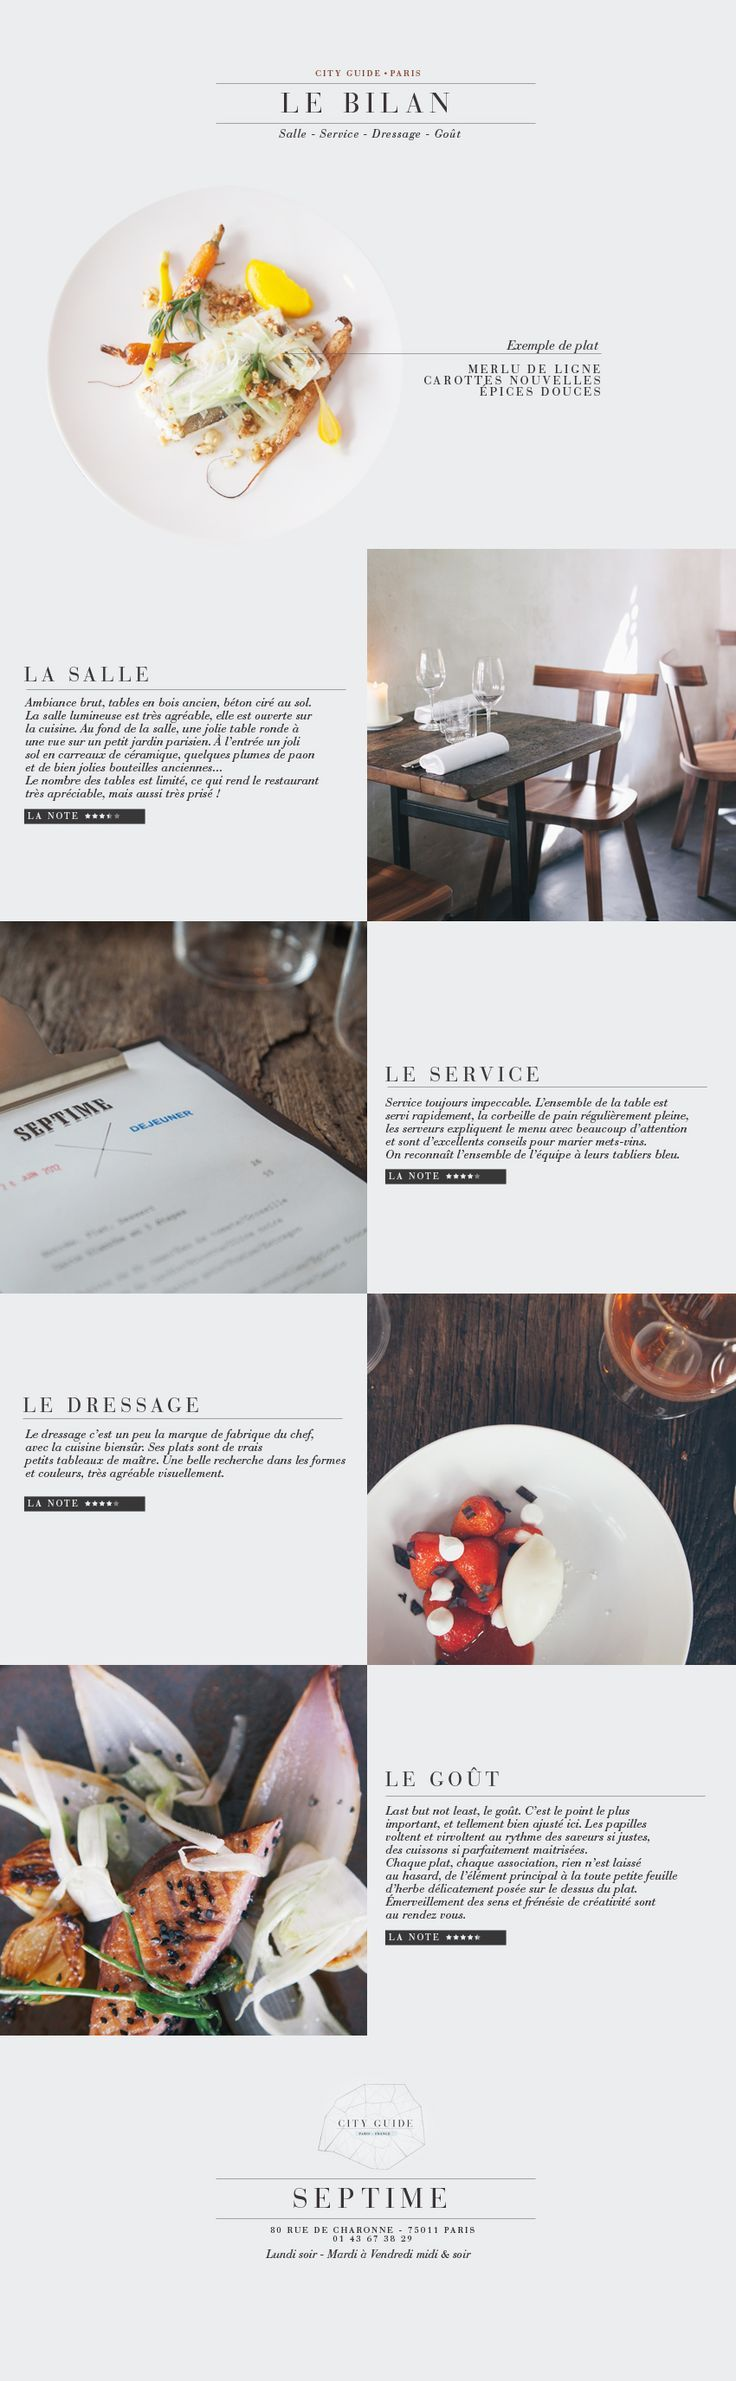 Restaurant Paris simple resturant website design